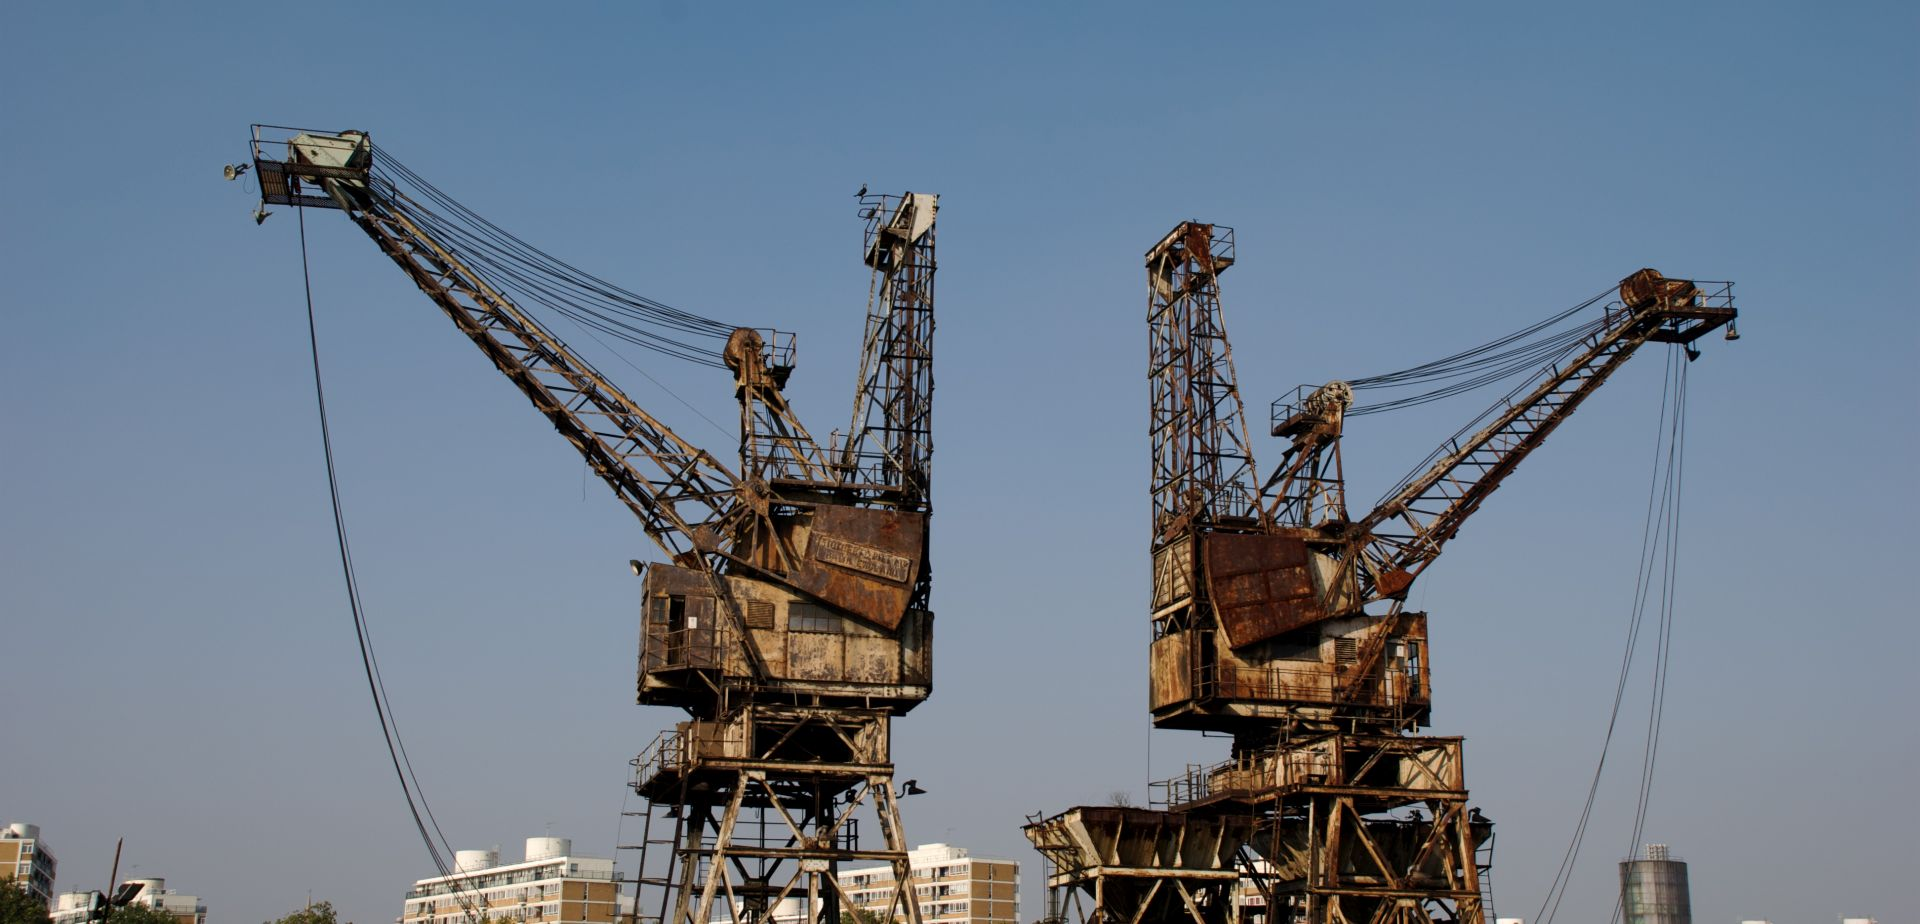 Cranes at the Battersea Power Station in London